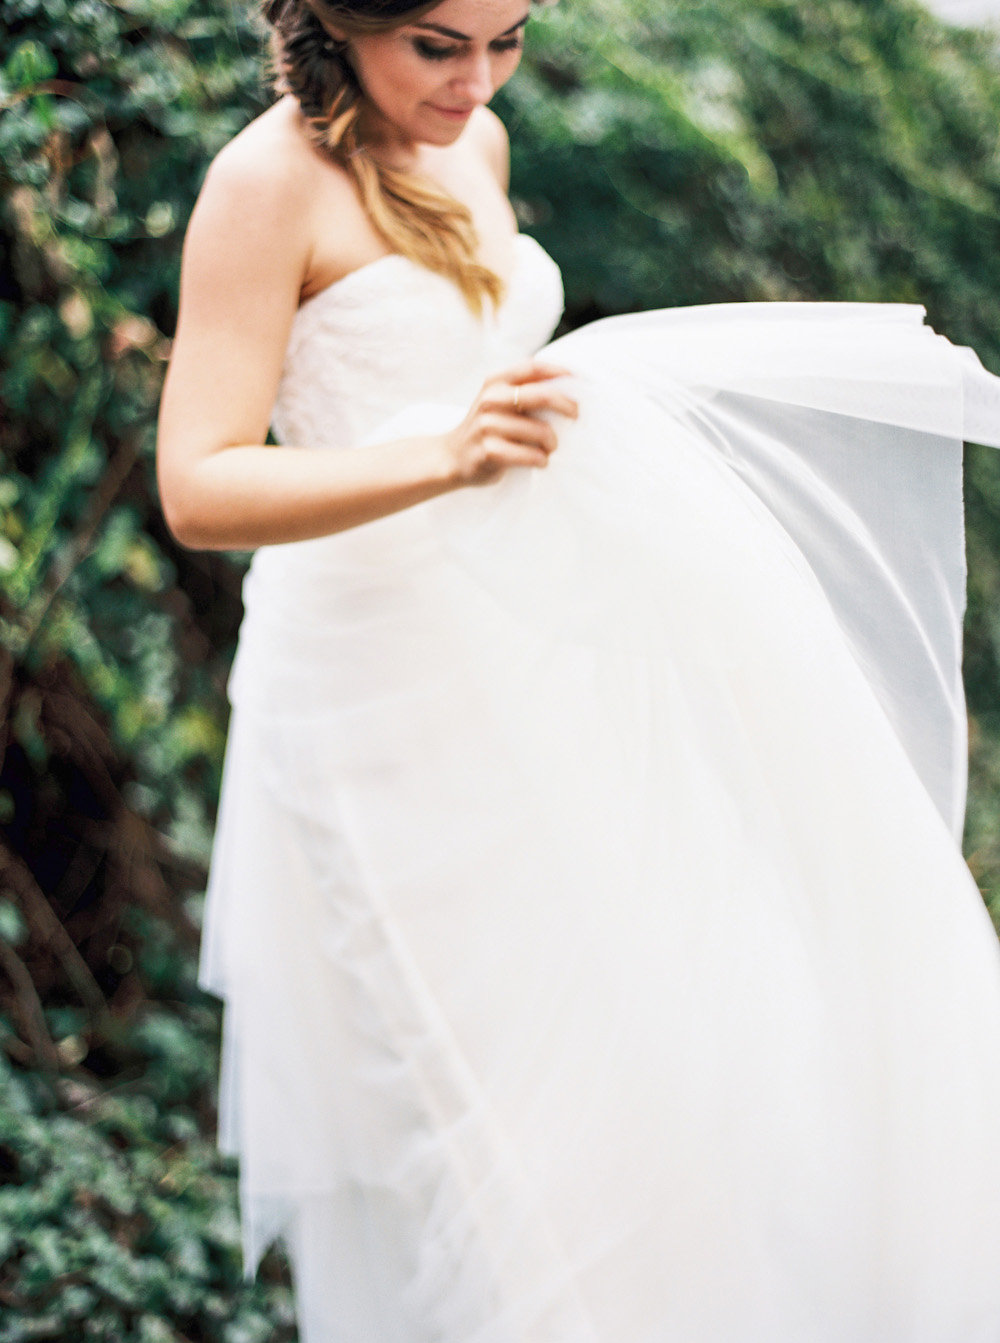 noi-tran-photography-burnetts-boards-burying-the-burbon-savannah-weddings-southern-weddings-atlanta-weddings-sarah-seven-ivory-and-beau-bridal-boutique-savannah-bridal-shop-savannah-bridal-gowns-savannah-wedding-planner-WhiteWood-Events-26.jpg